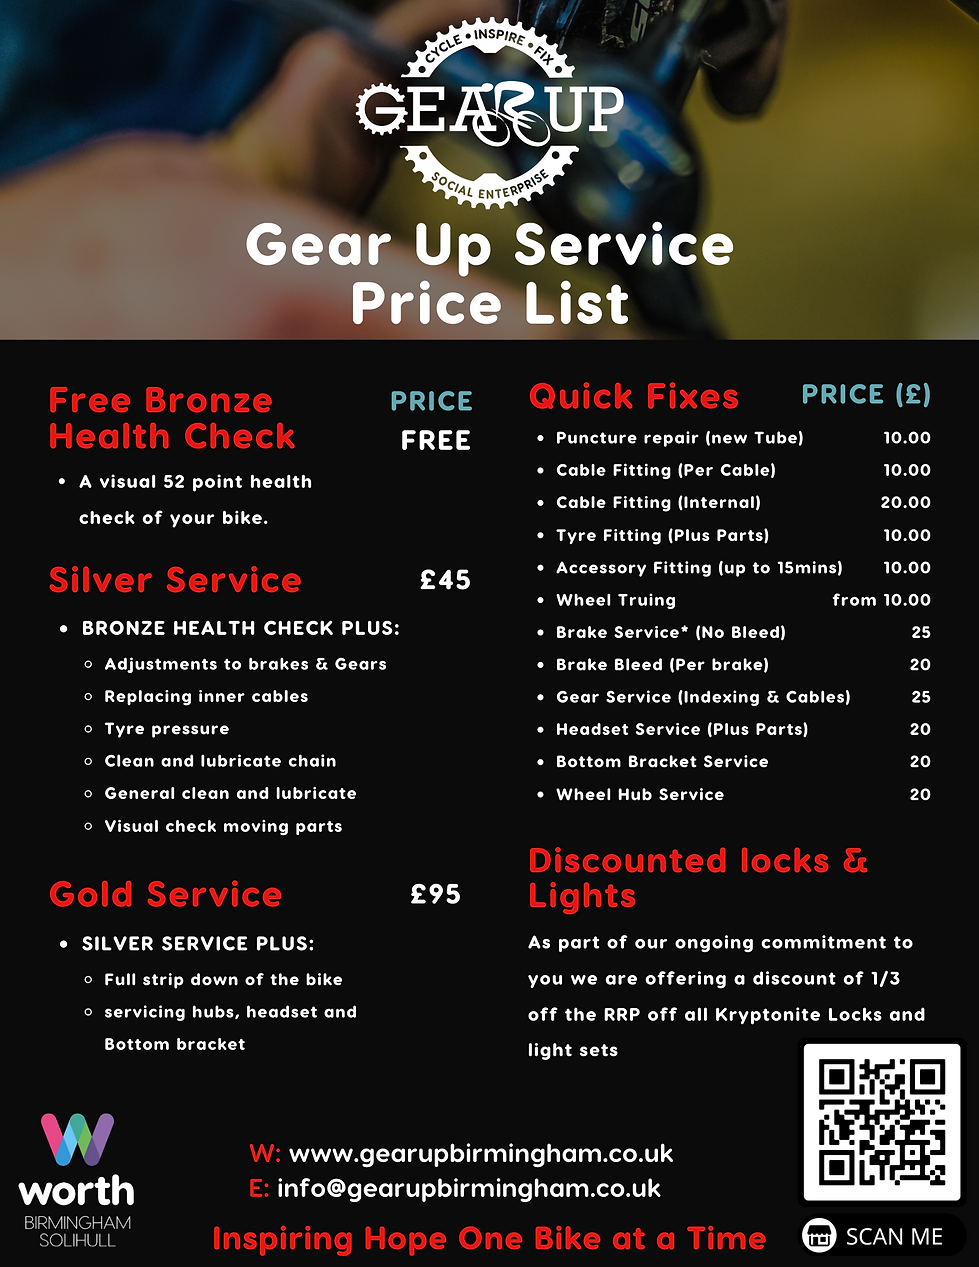 Gear Up Price List (1).png